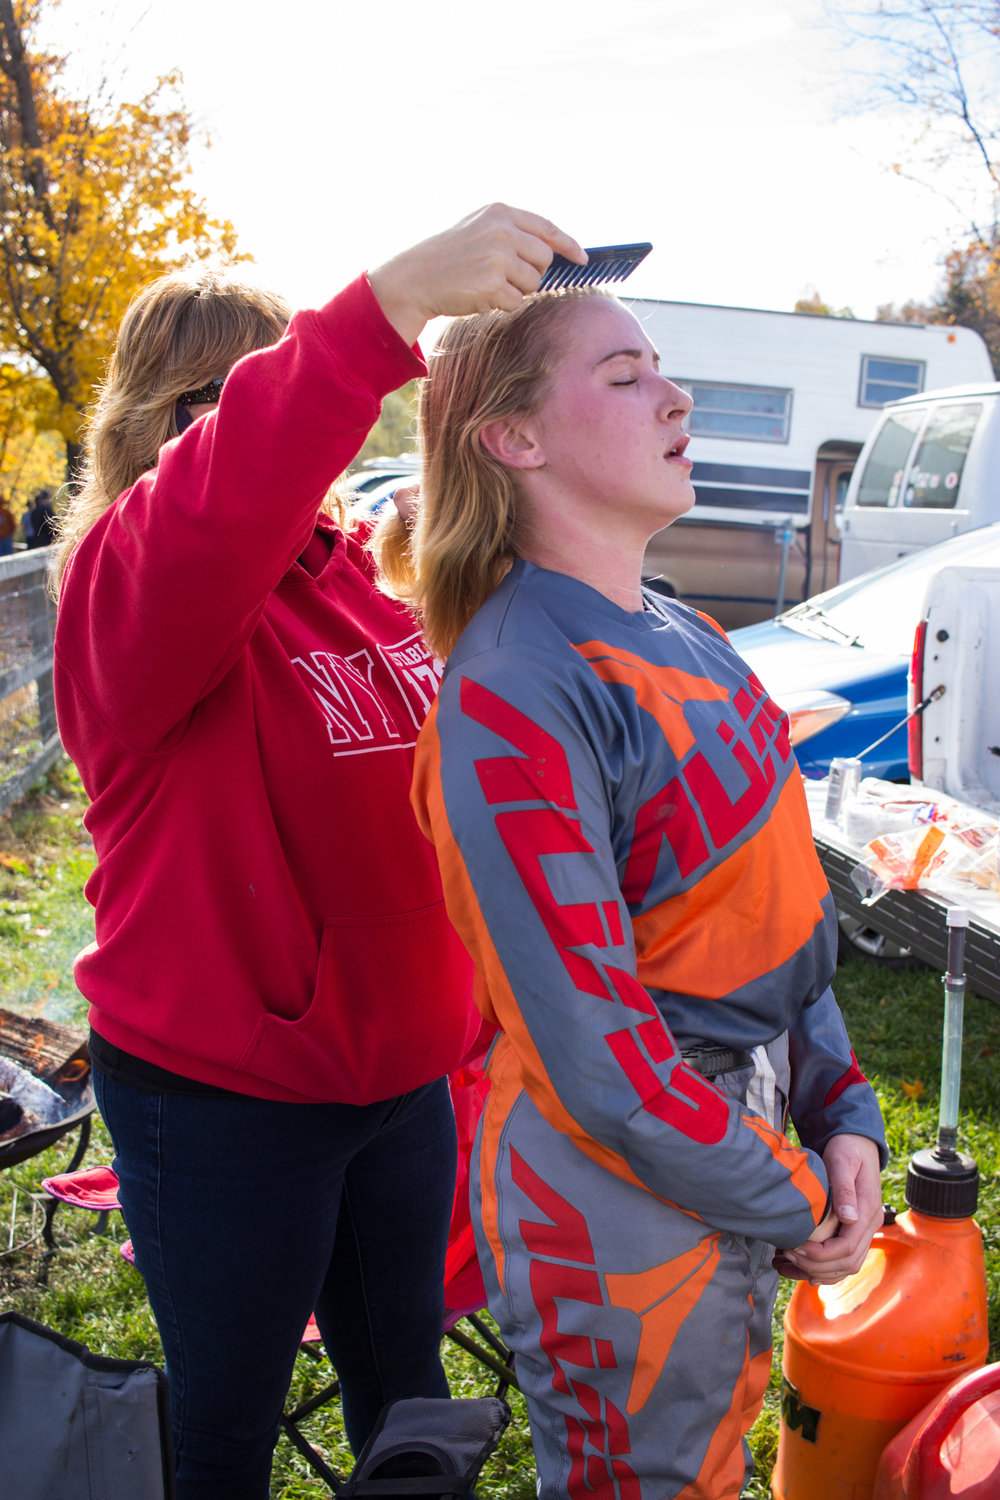 April Angelo, Mike Eberhardt's girlfriend, combs Mallory's hair after she takes her helmet off. 2016.